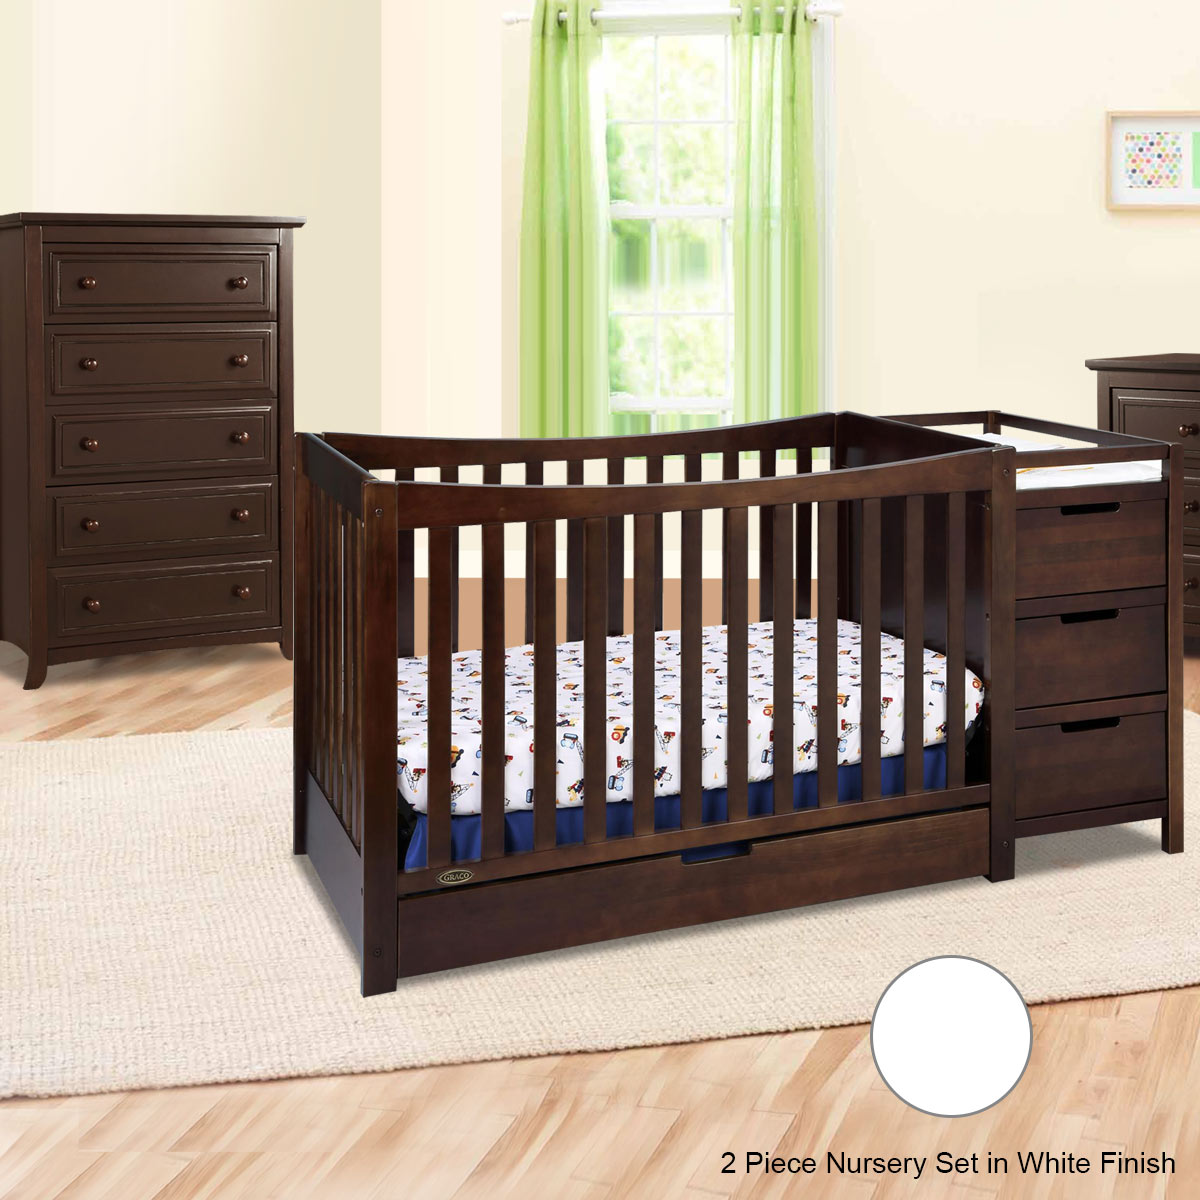 Graco Cribs Remi 3 Piece Nursery Set 4 In 1 Convertible Crib And Changer Auburn 5 Drawer Dresser White Free Shipping